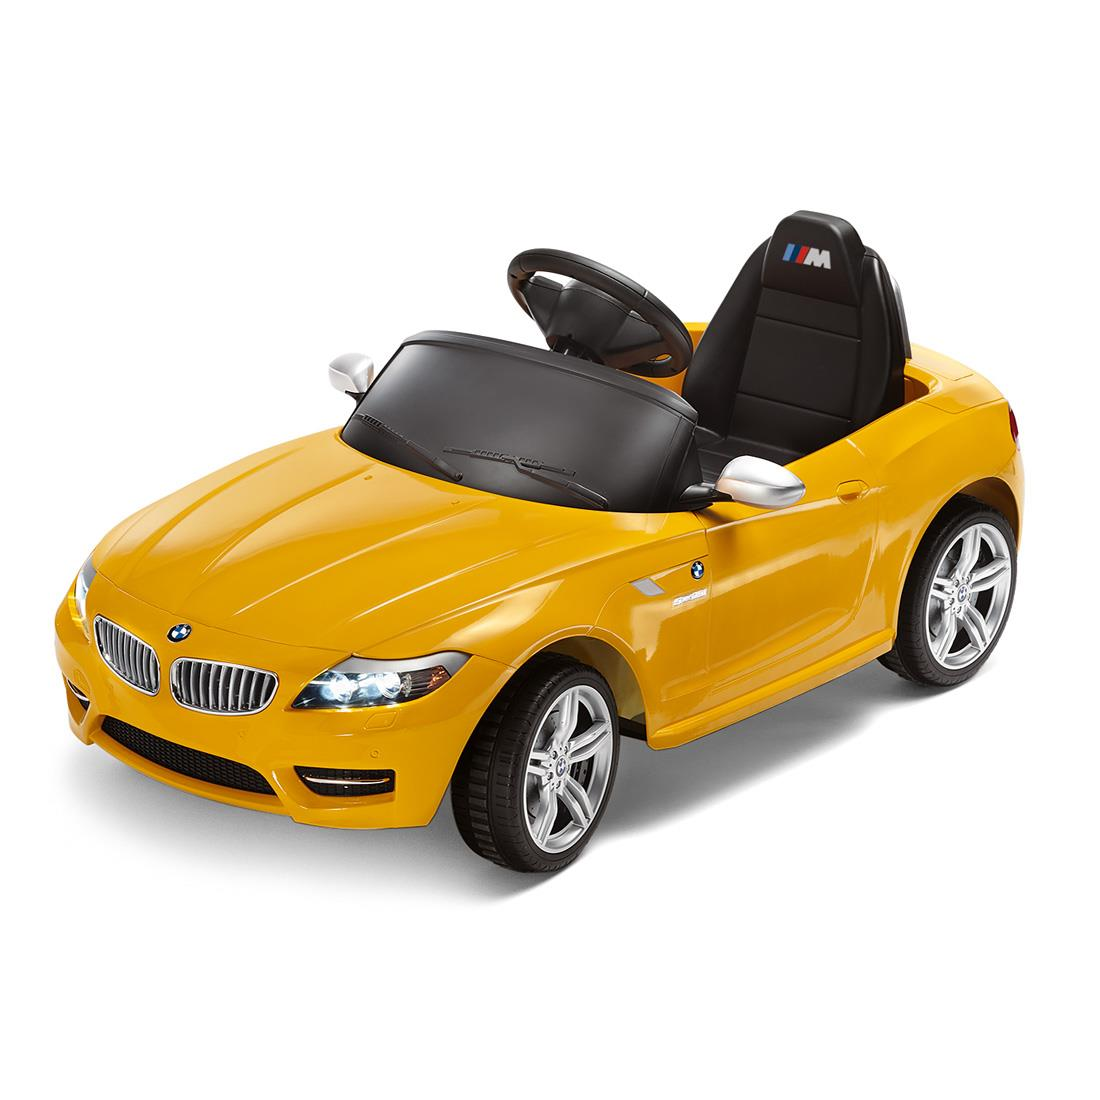 Bmw Z4 M Coupe Review: BMW Z4 Ride On Electric Car By BMW